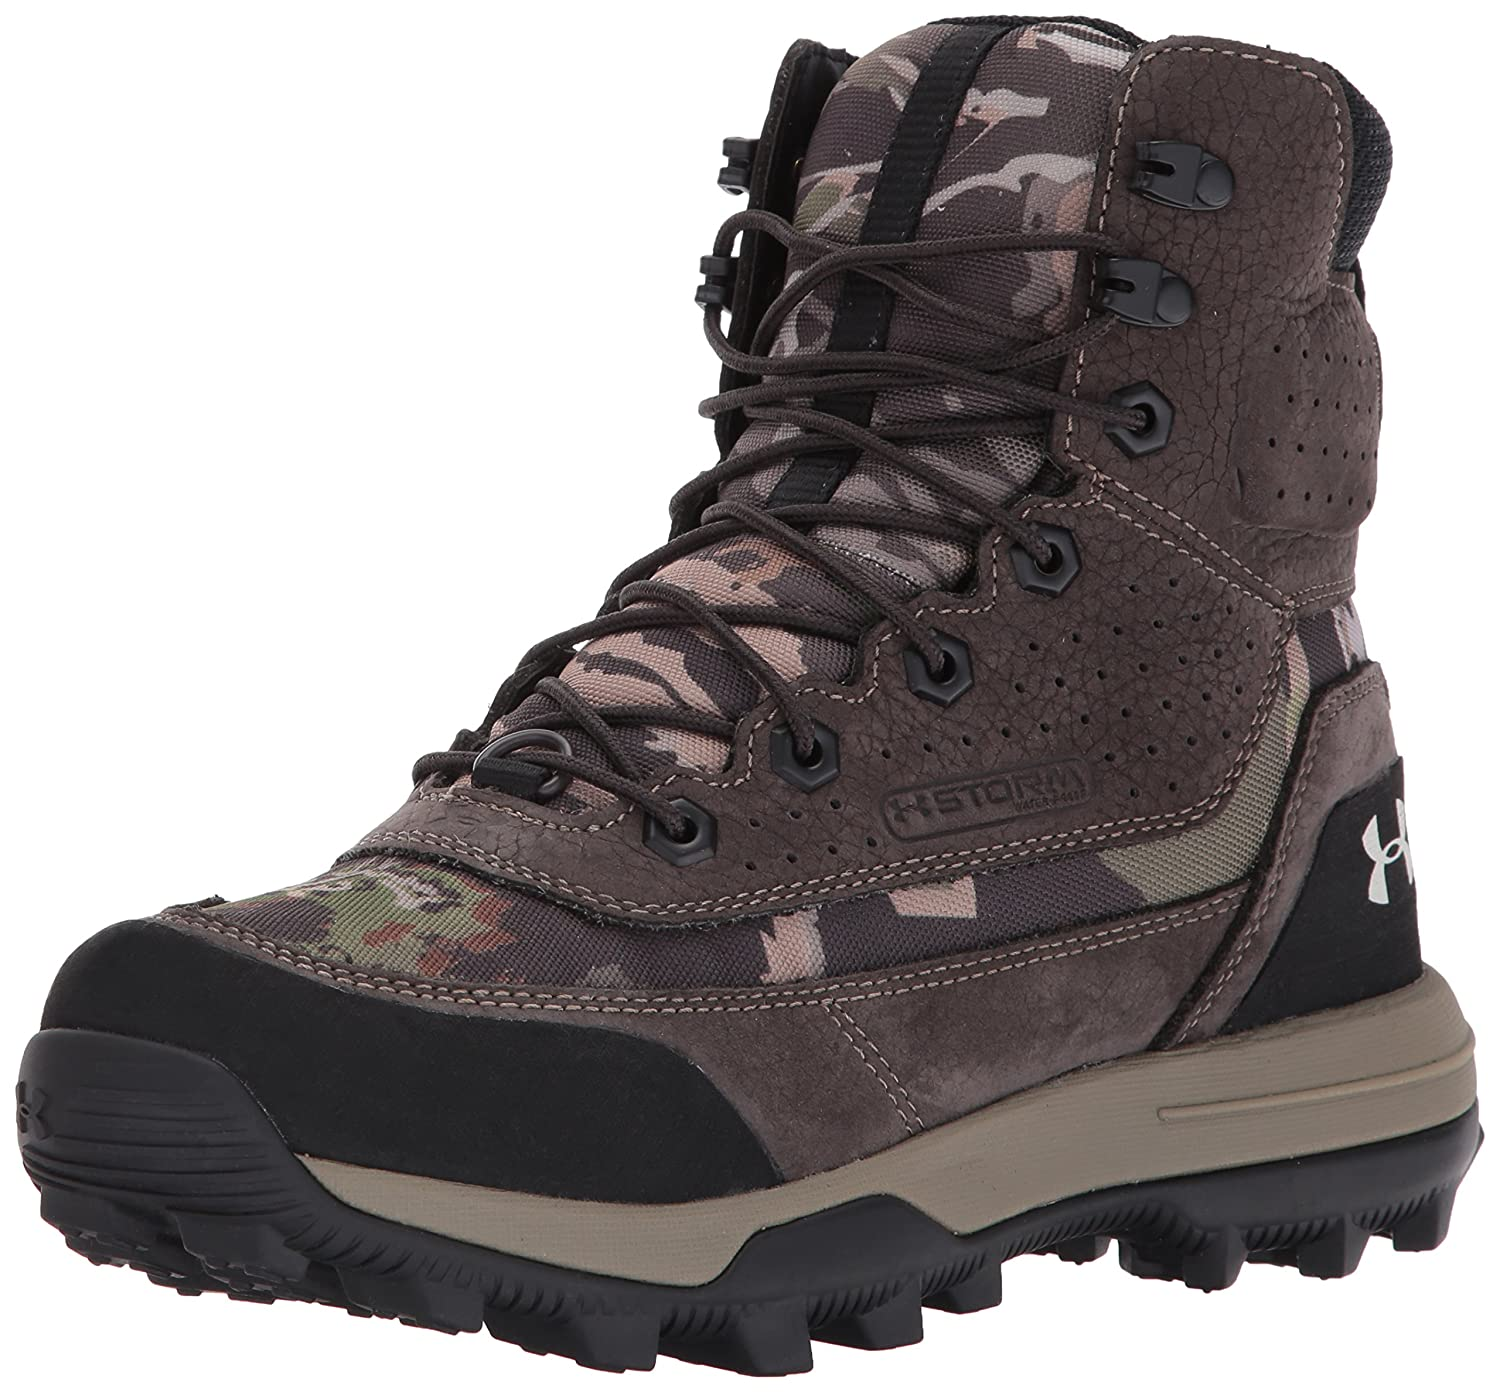 Under Armour Women's SF Bozeman 2.0 Hiking Boot B01MRLR4MV 7 M US|Ridge Reaper Camo Fo (943)/Cannon